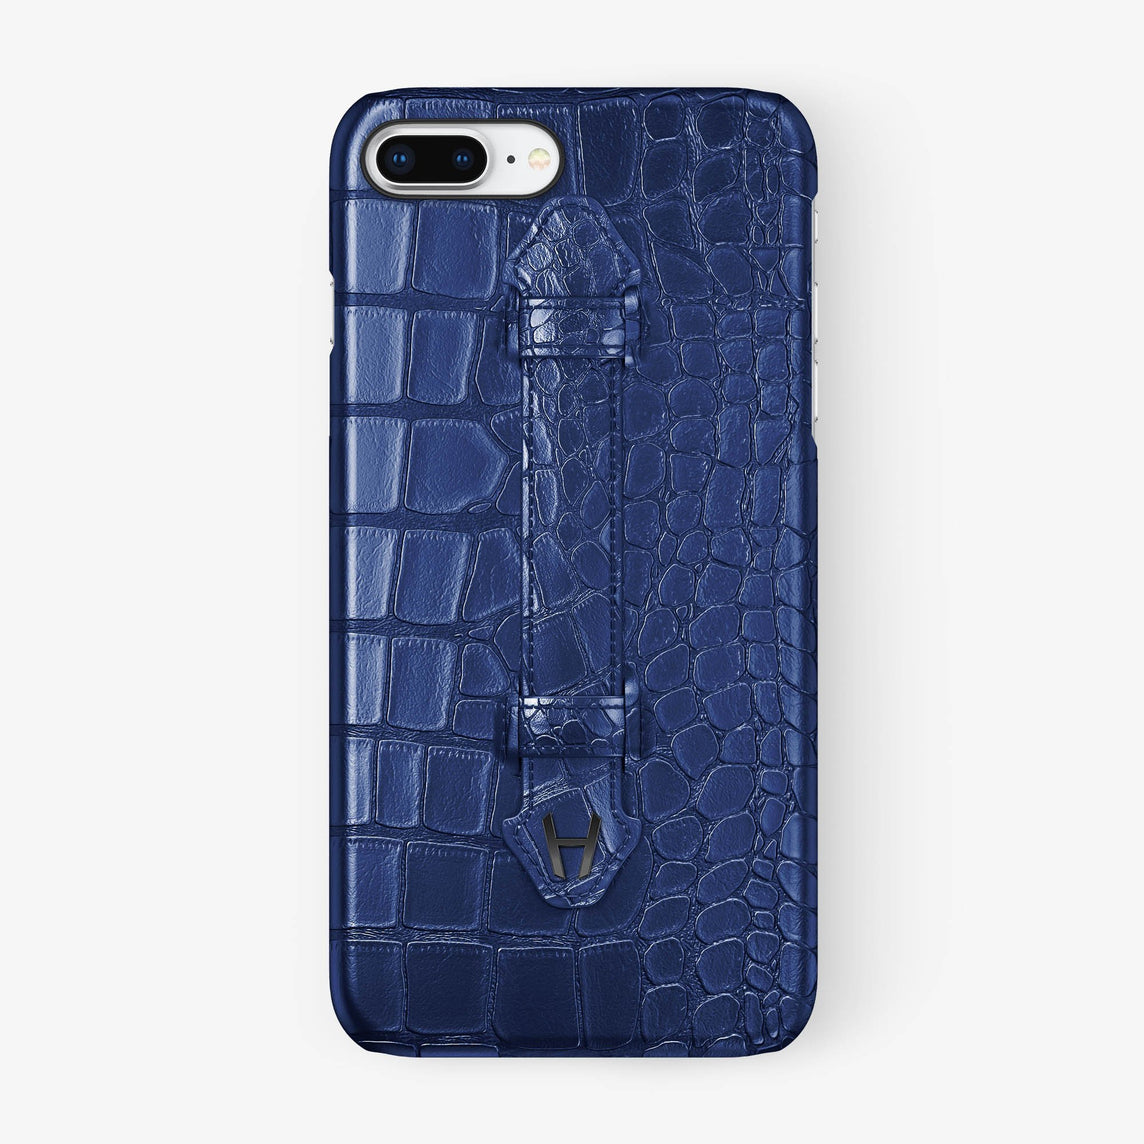 Alligator Finger Case iPhone 7/8 Plus | Navy Blue - Black